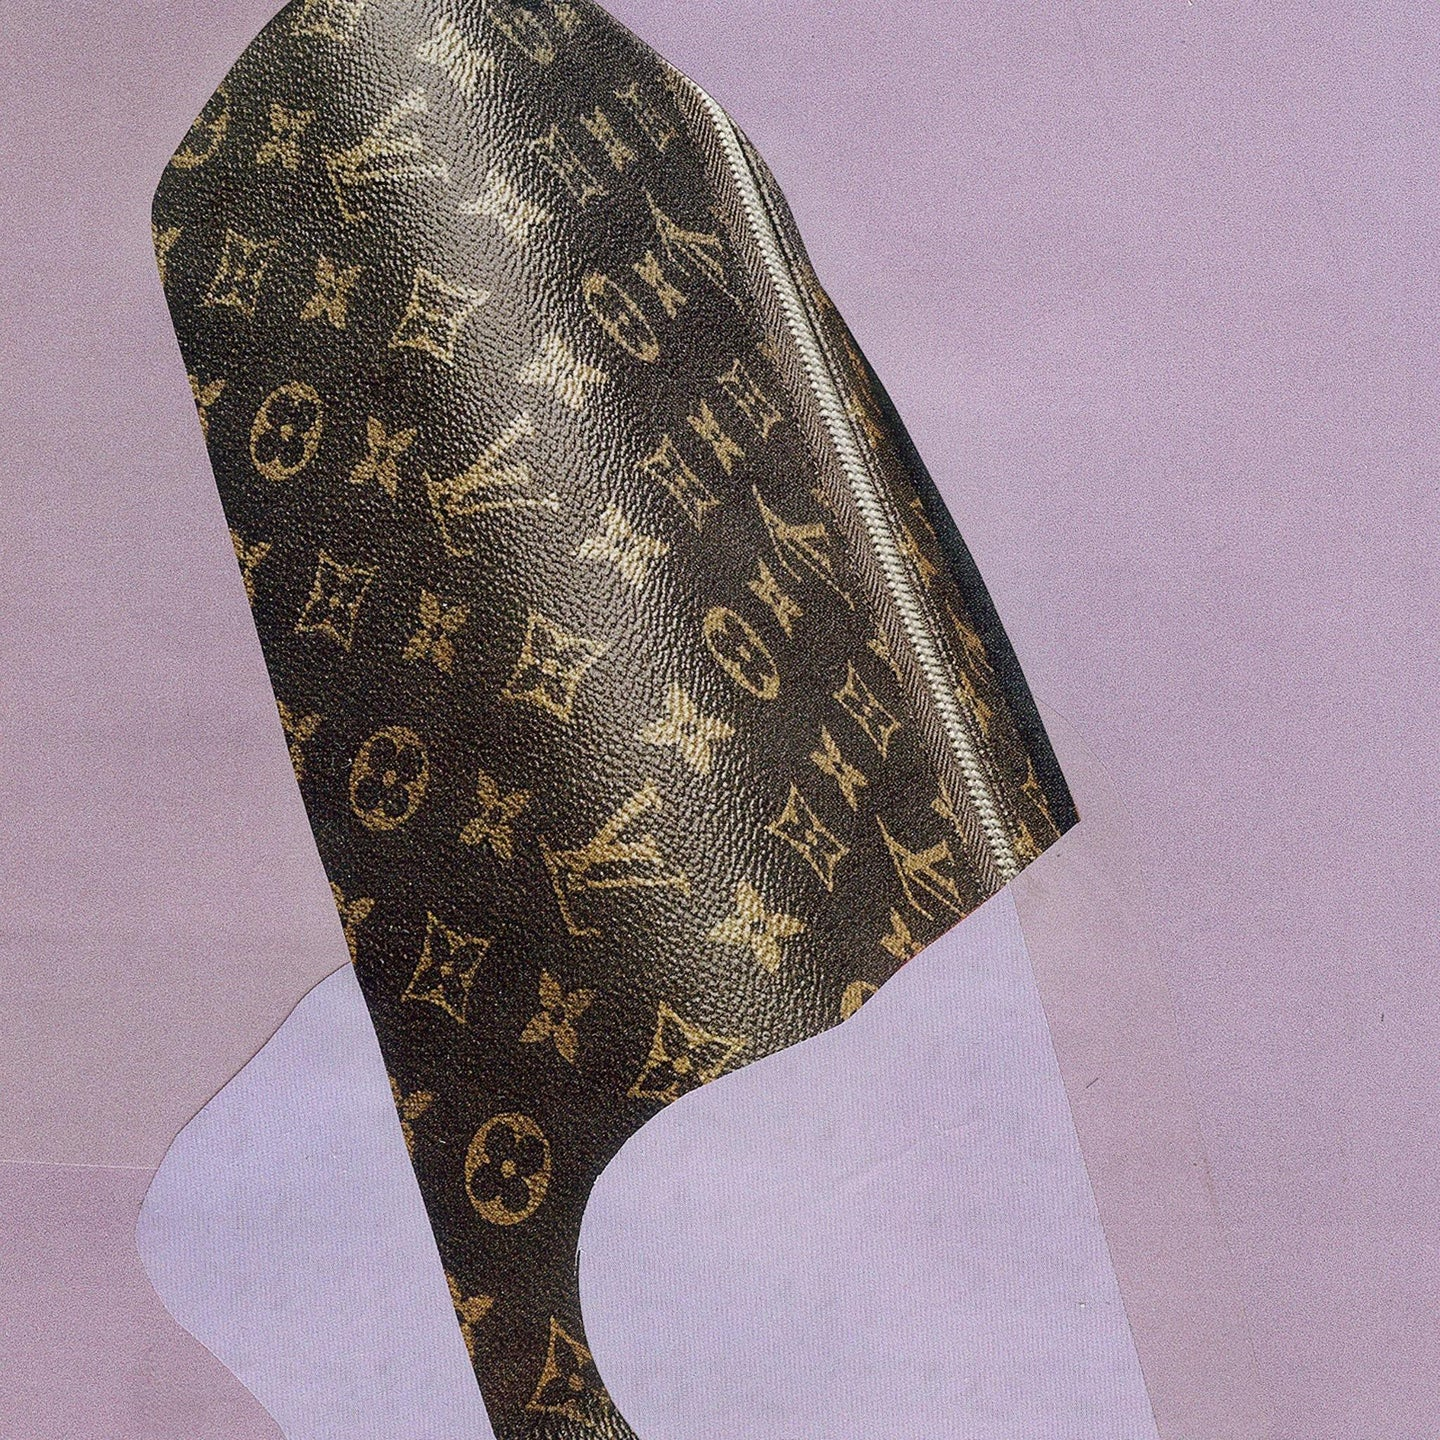 Louis Vuitton 2018 I